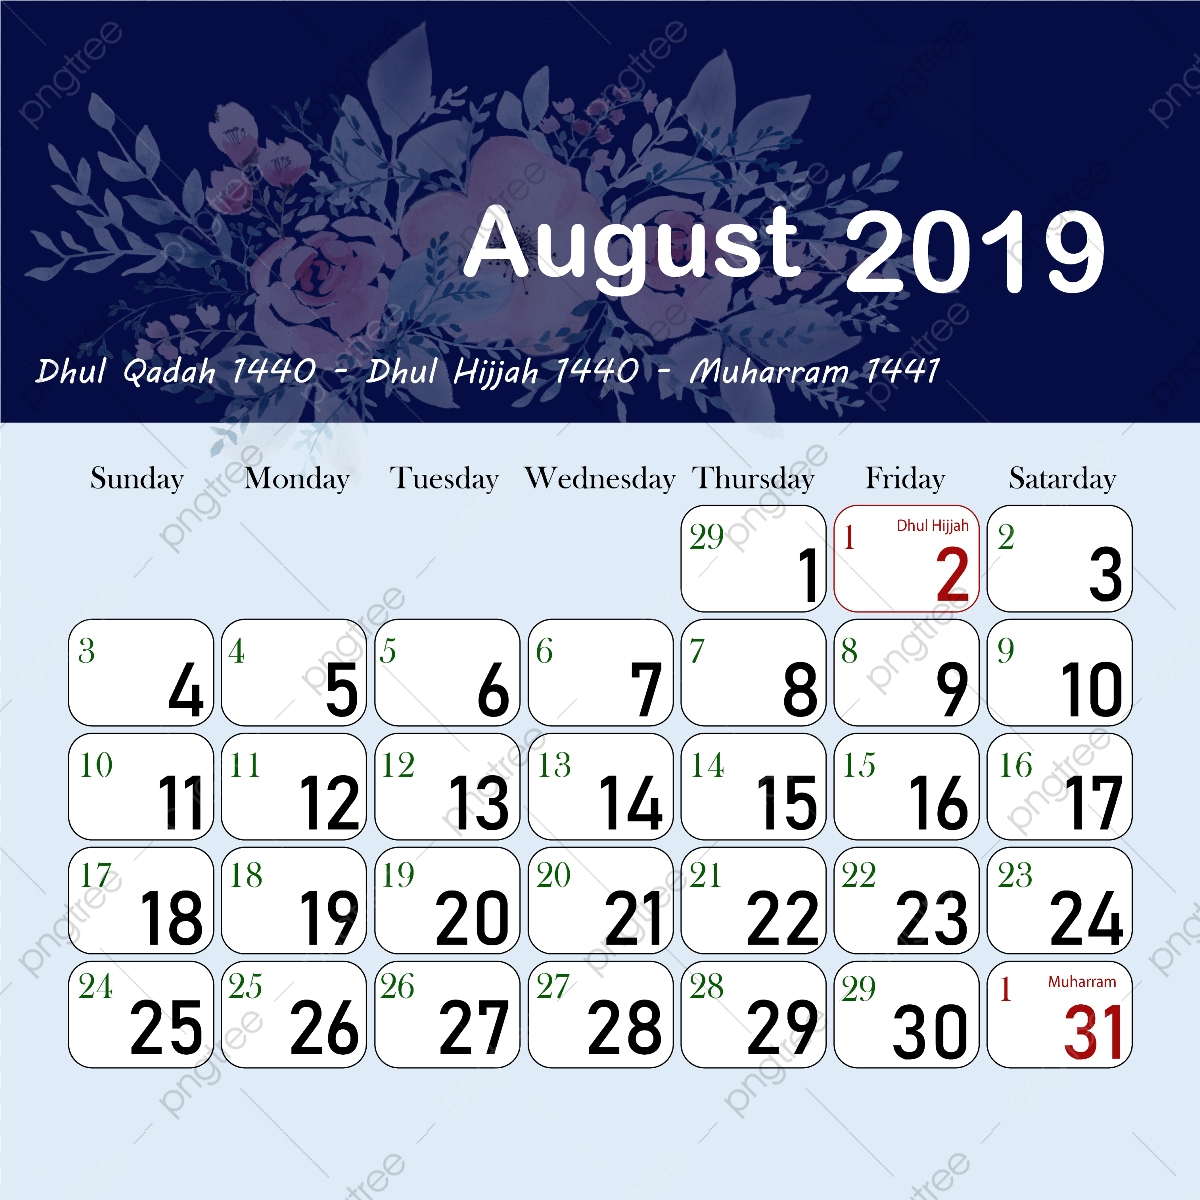 Islamic Hijri Calendar August 1440 2019, 1440, 1441, 1440 with regard to 1440 Hijri Calendar